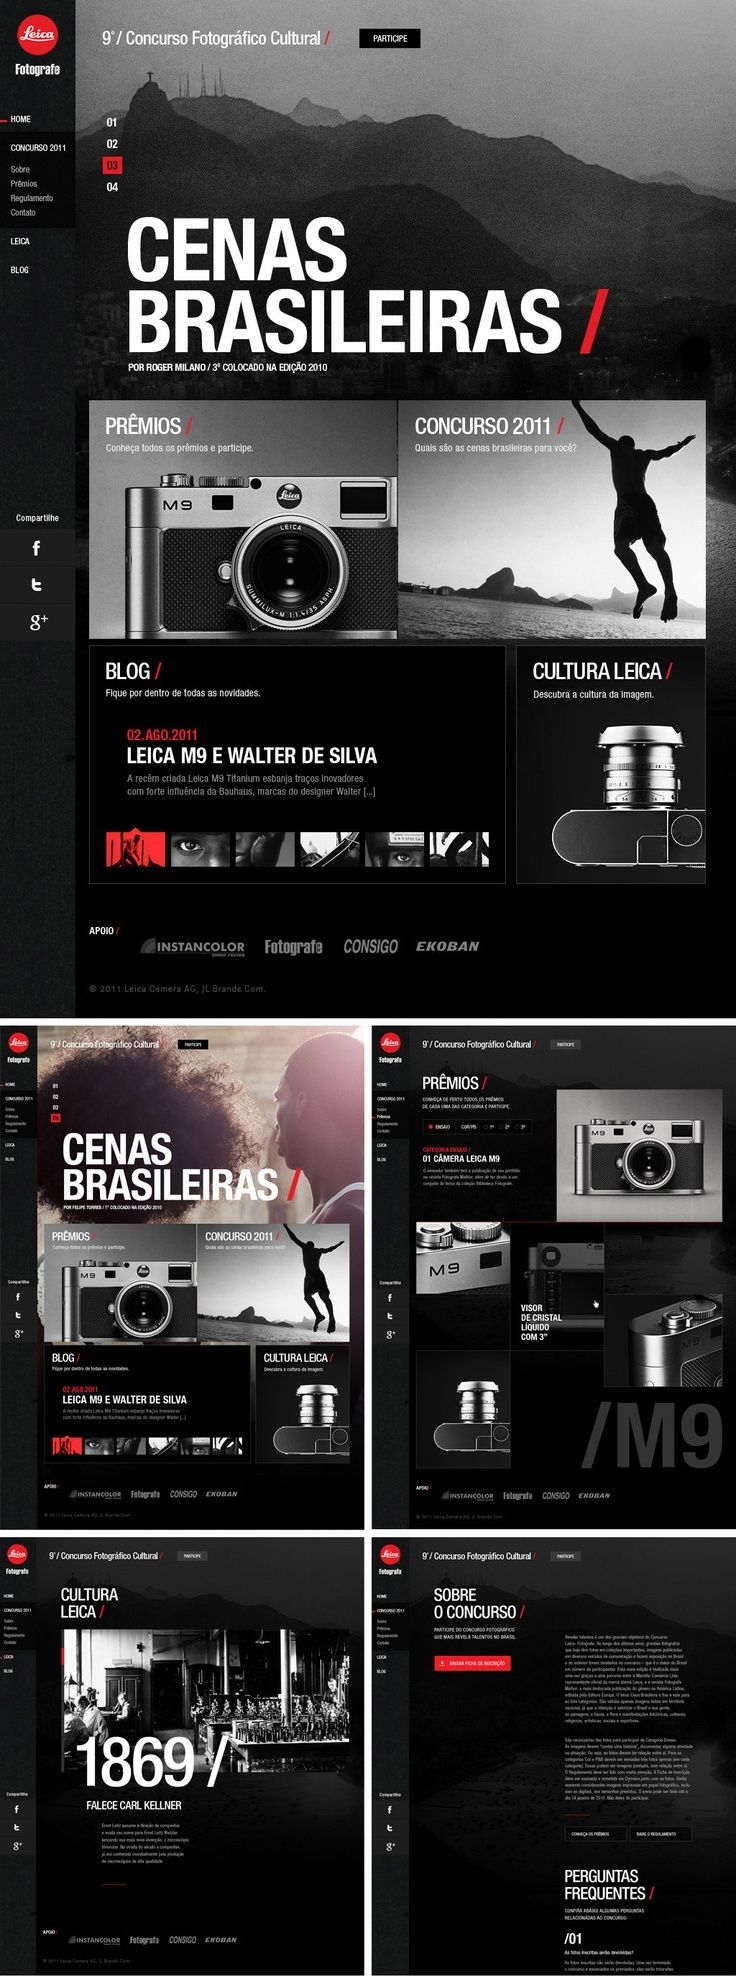 Ideas & Inspirations für Web Designs Leica - Photo Contest 2011 - Augusto Paiva / Interactive Whatever Schweizer Webdesign http://www.swisswebwork.ch